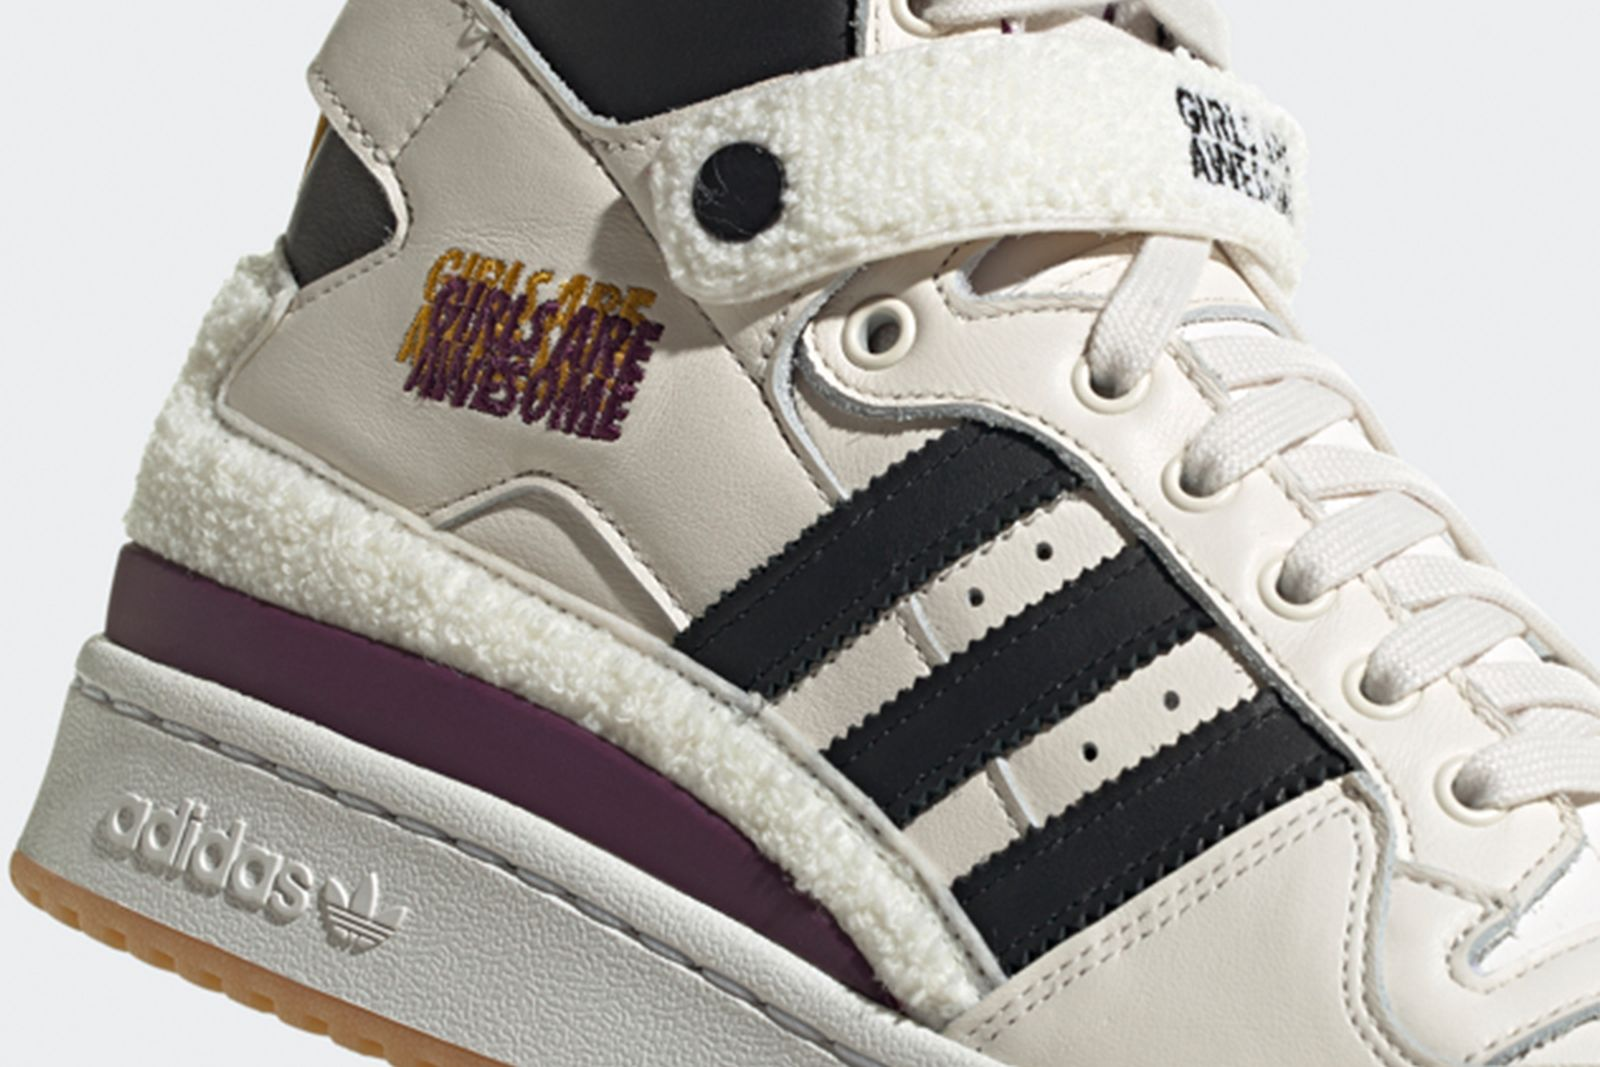 girls-are-awesome-adidas-originals-forum-release-date-price-prdct-03